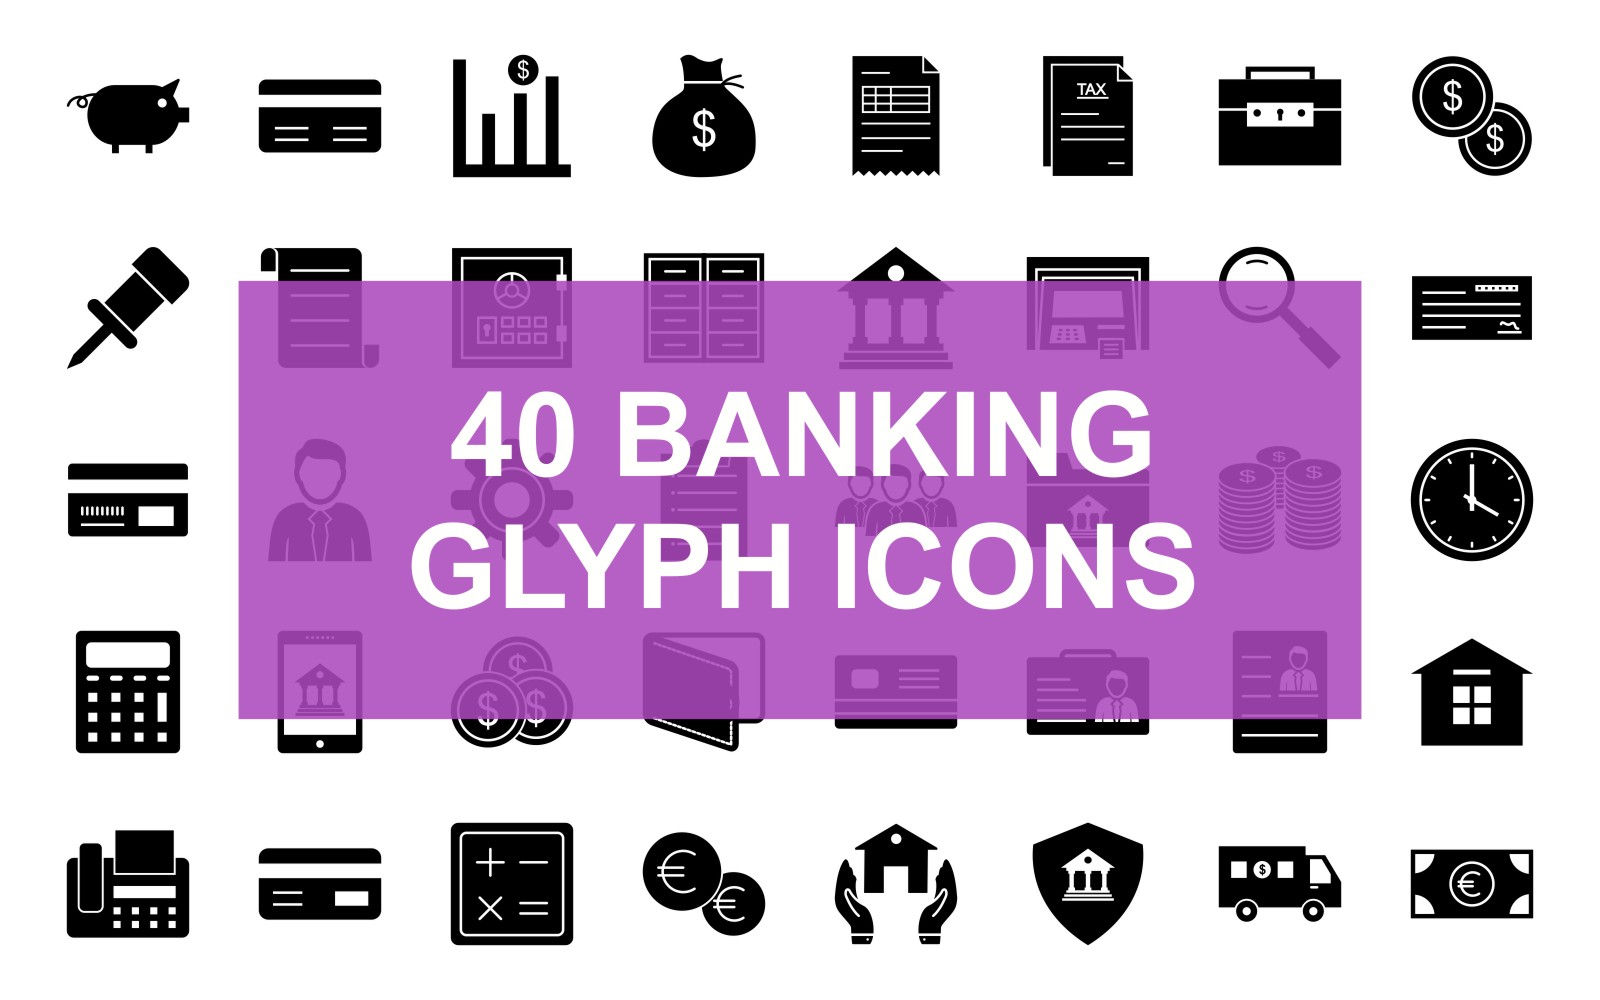 40 Banking Glyph Black Iconset Template